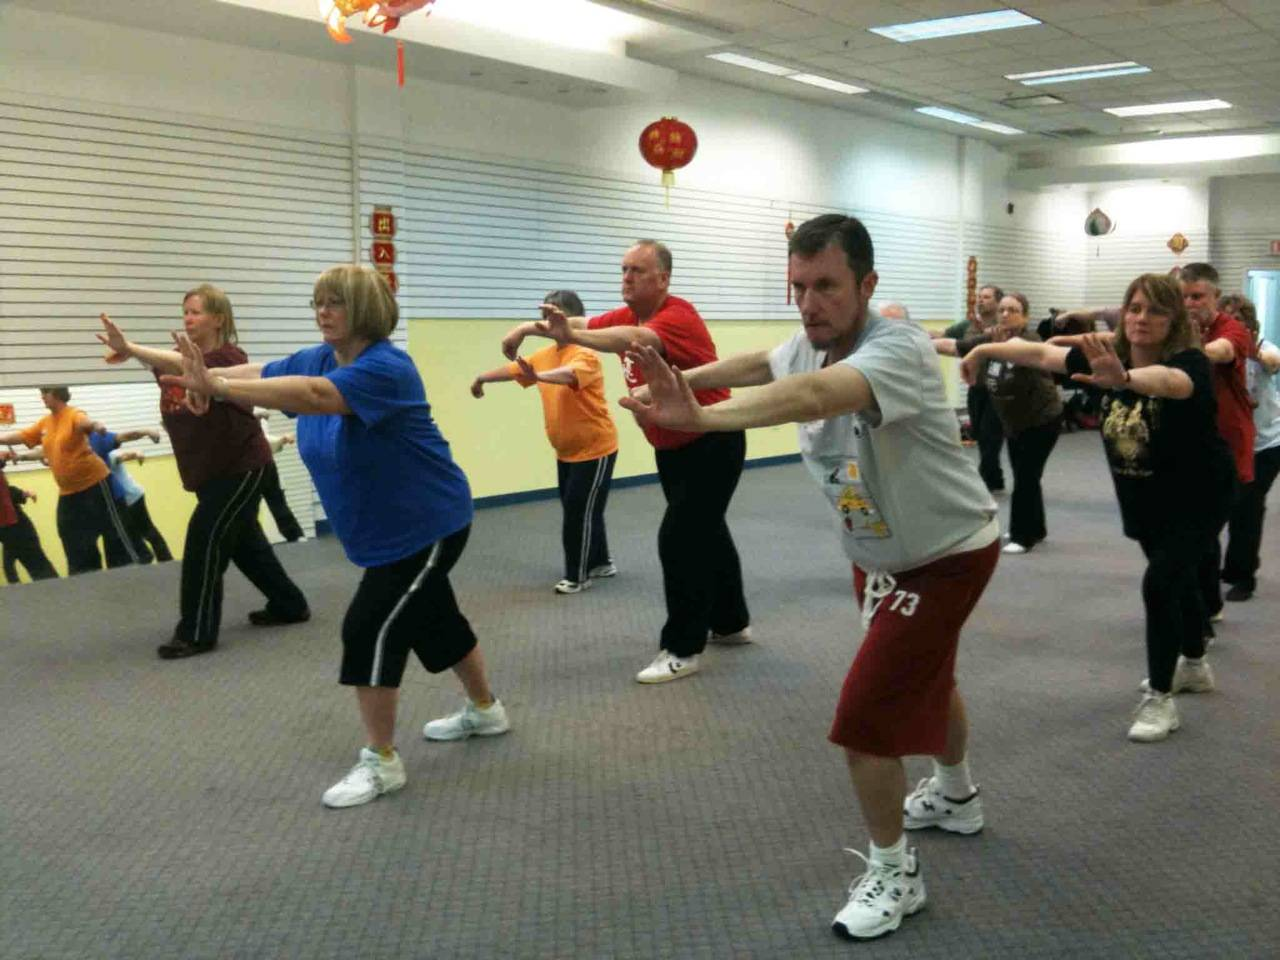 Taoist Tai Chi Society members practice in their St Charles location